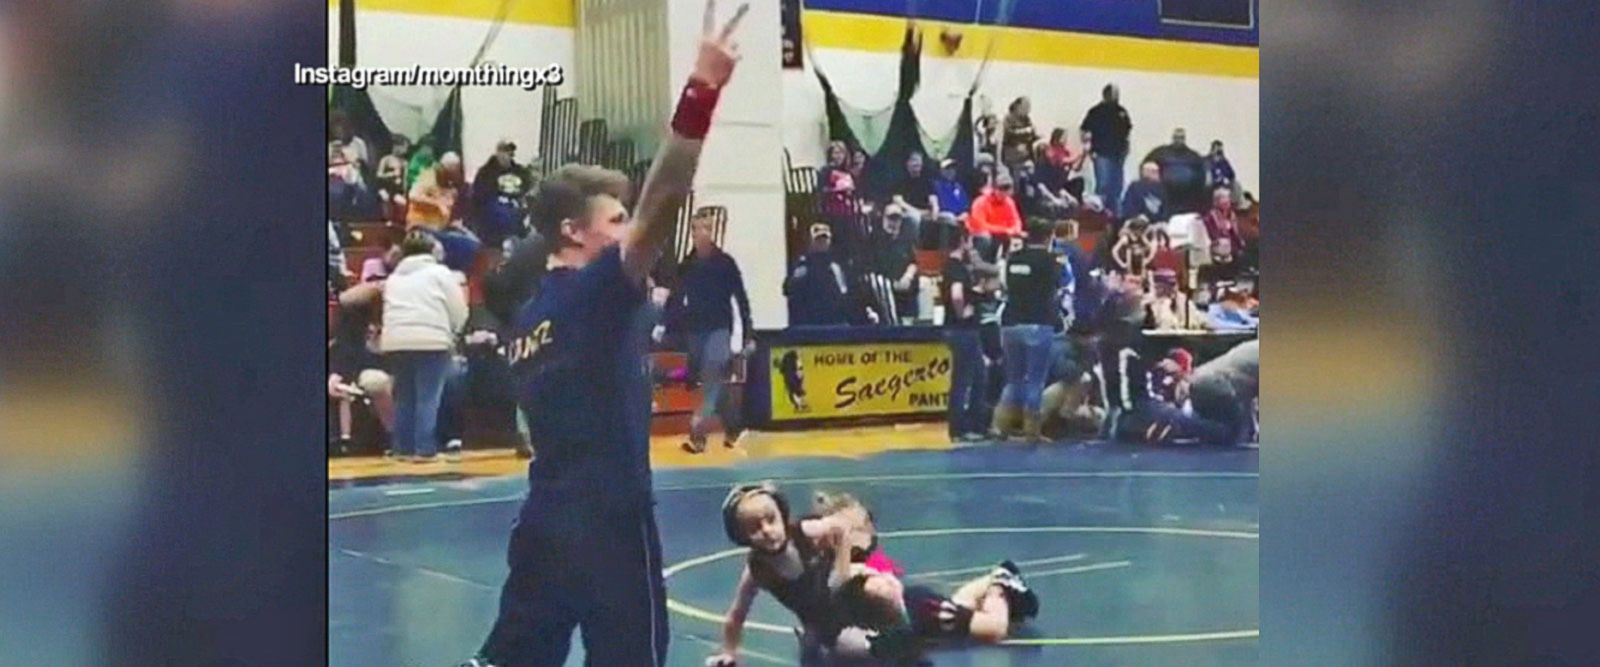 VIDEO: Boy runs from girl in toddler wrestling match